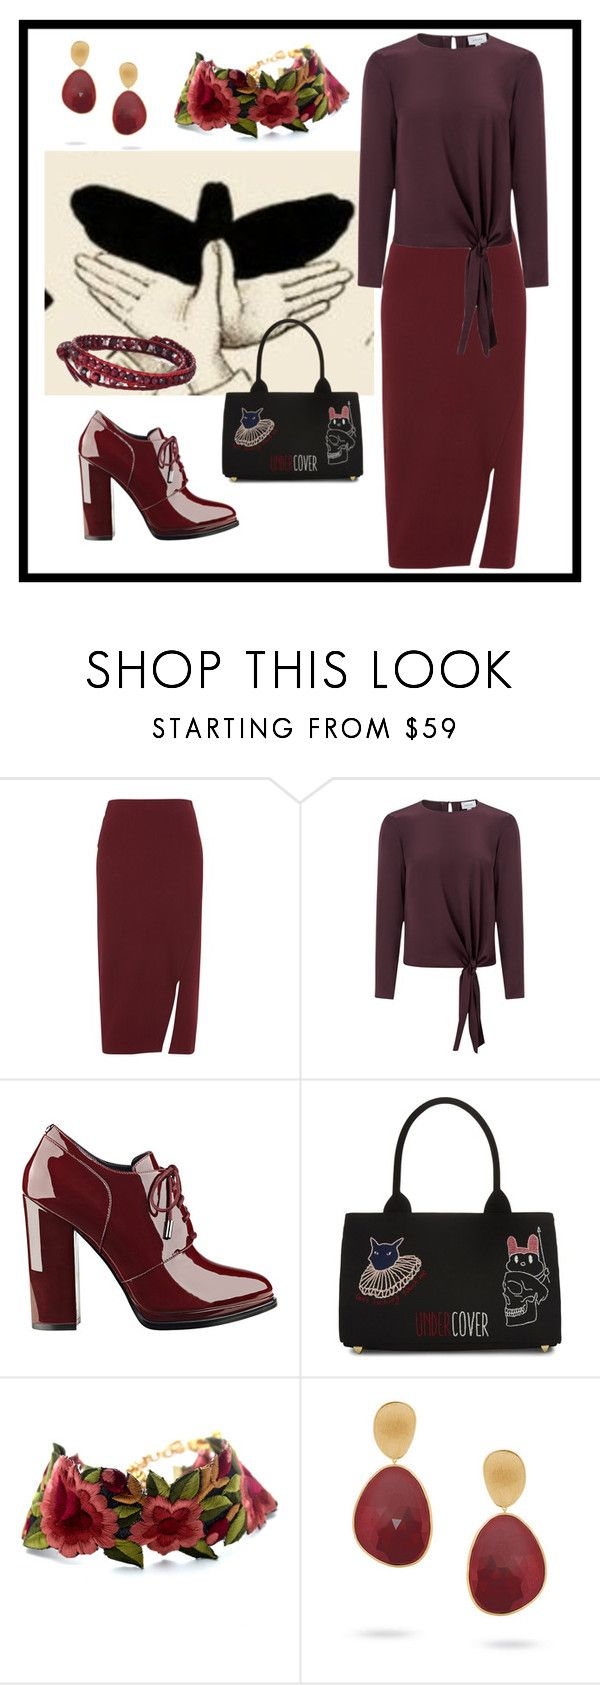 """""""Mini Tote Bag"""" by dundiddit ❤ liked on Polyvore featuring GE, Whistles, Jigsaw, GUESS, Undercover, Child Of Wild, Marco Bicego and Chan Luu"""